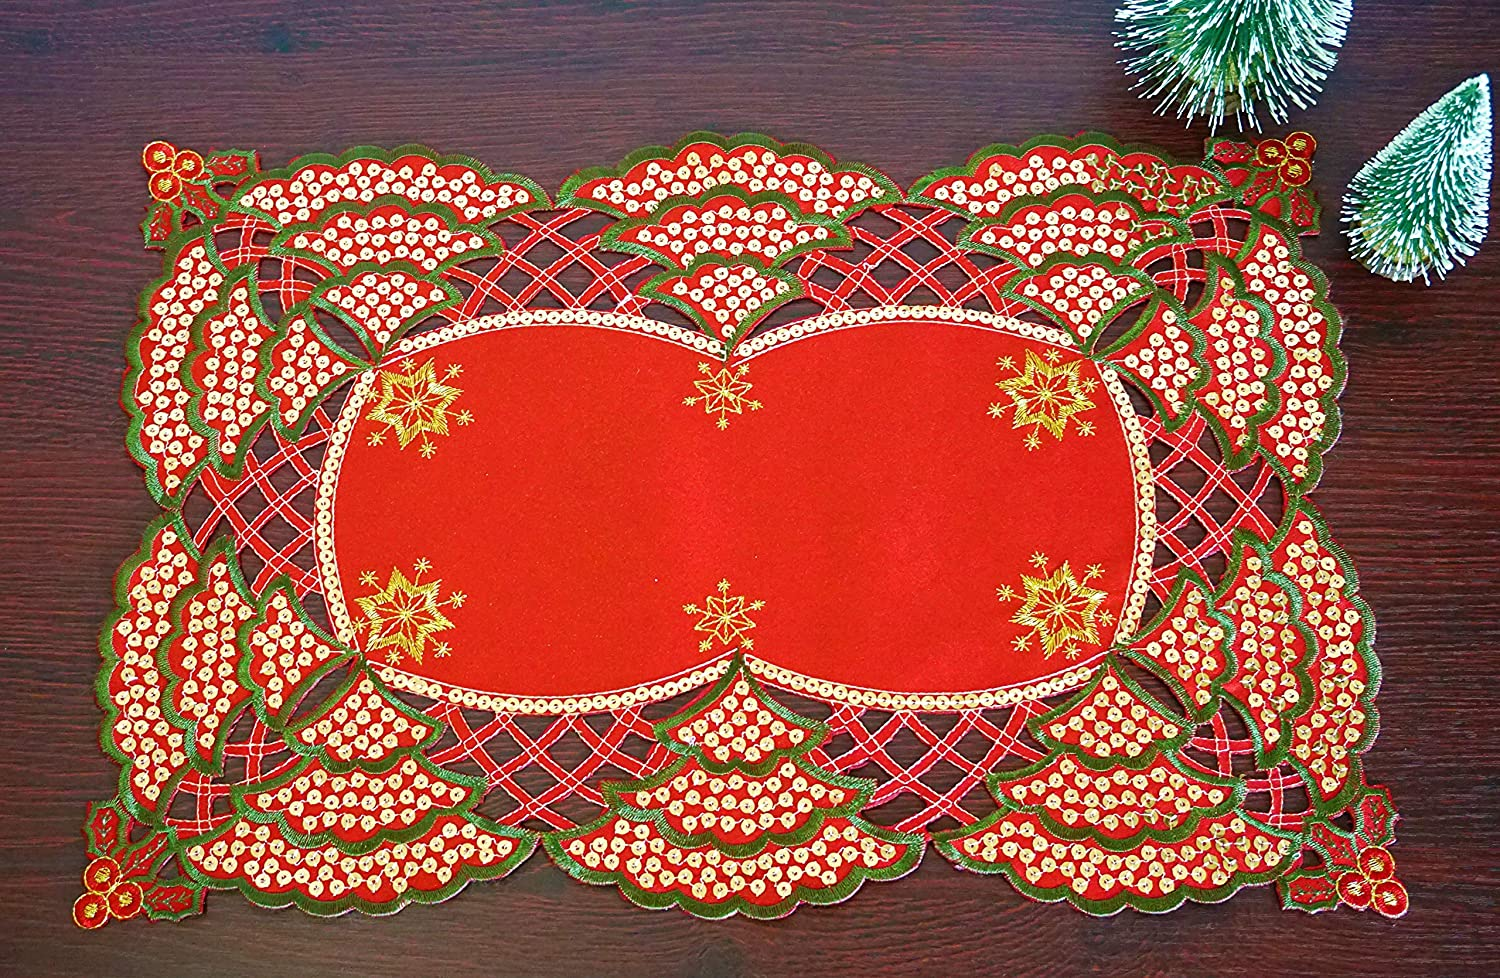 CloudSun Holiday Christmas Placemats Set of 4,Poinsettia Embroidered Christmas Trees with Gold Sequins Table Topper for Home Kitchen Dining Room Xmas Table Decorations, 12